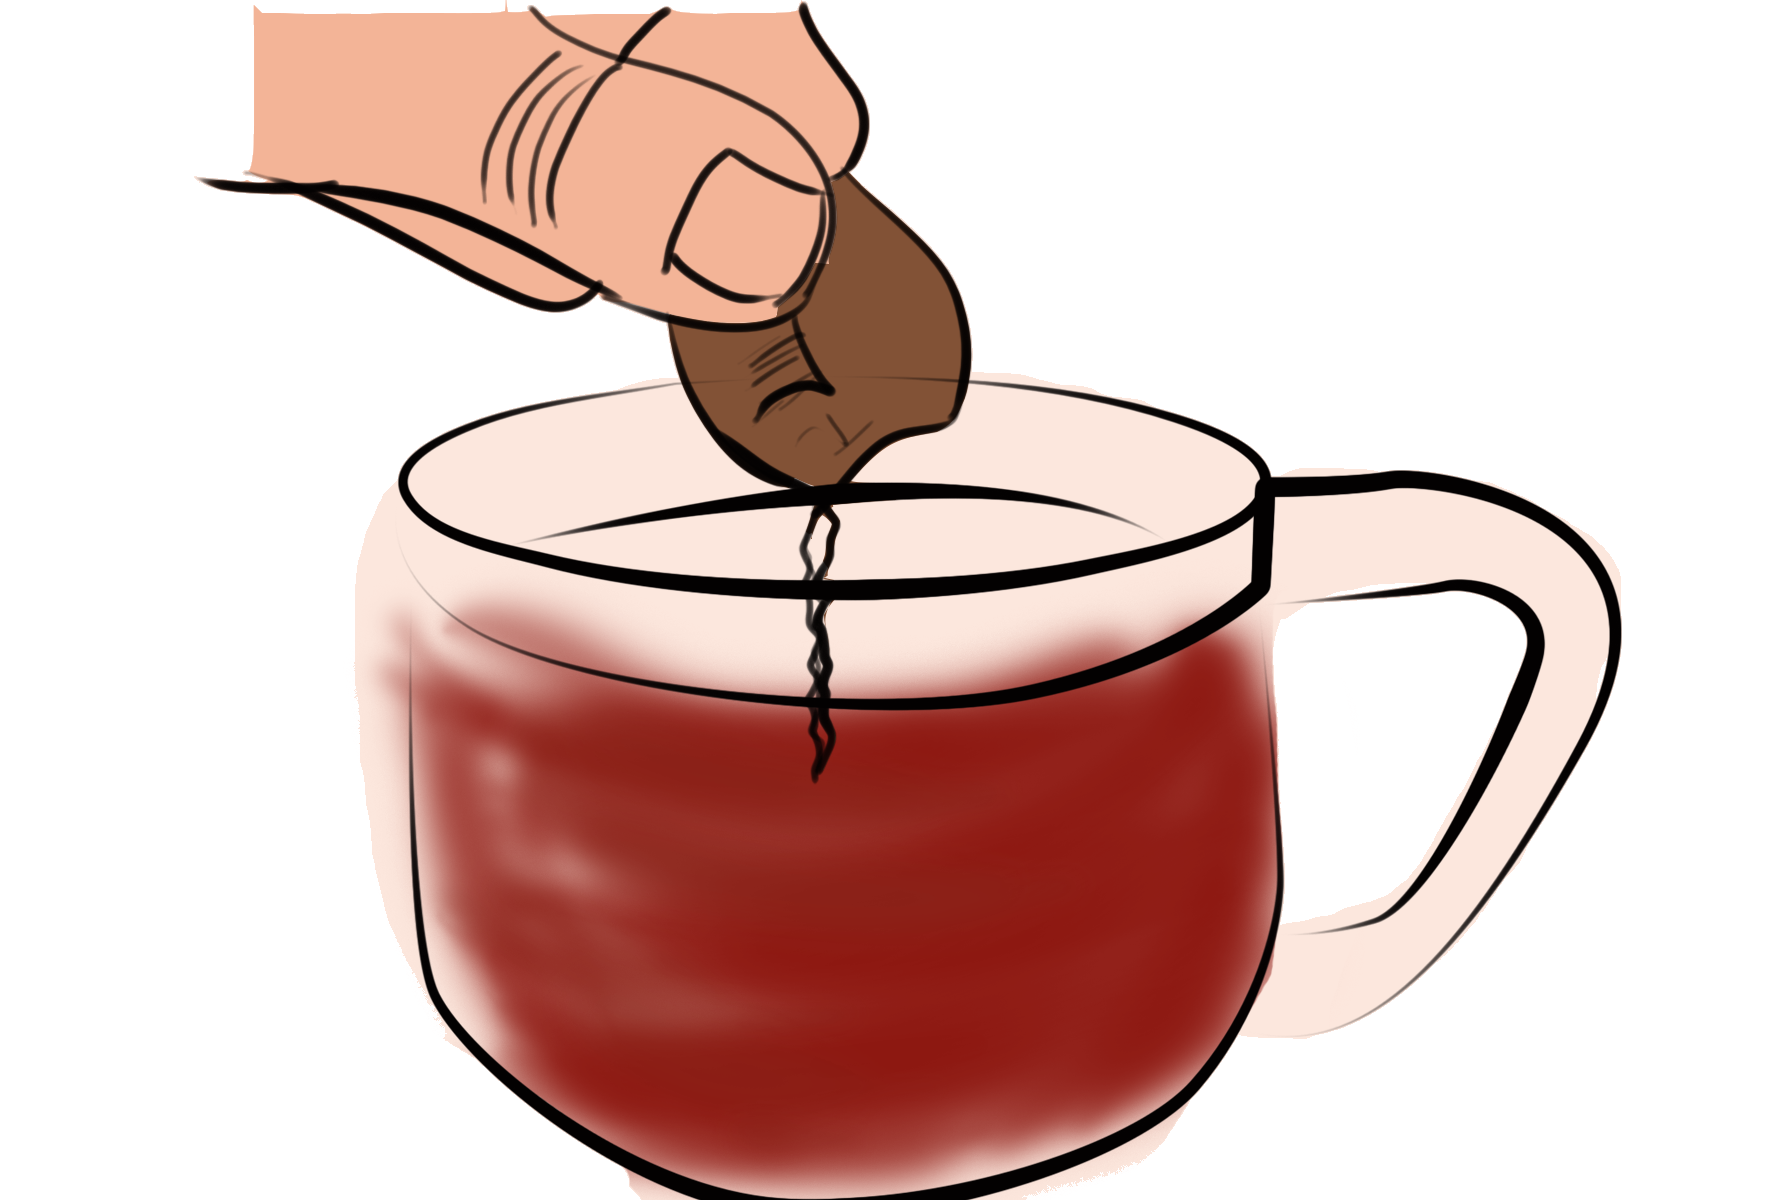 treating ganglion cyst with tea bags - step 2